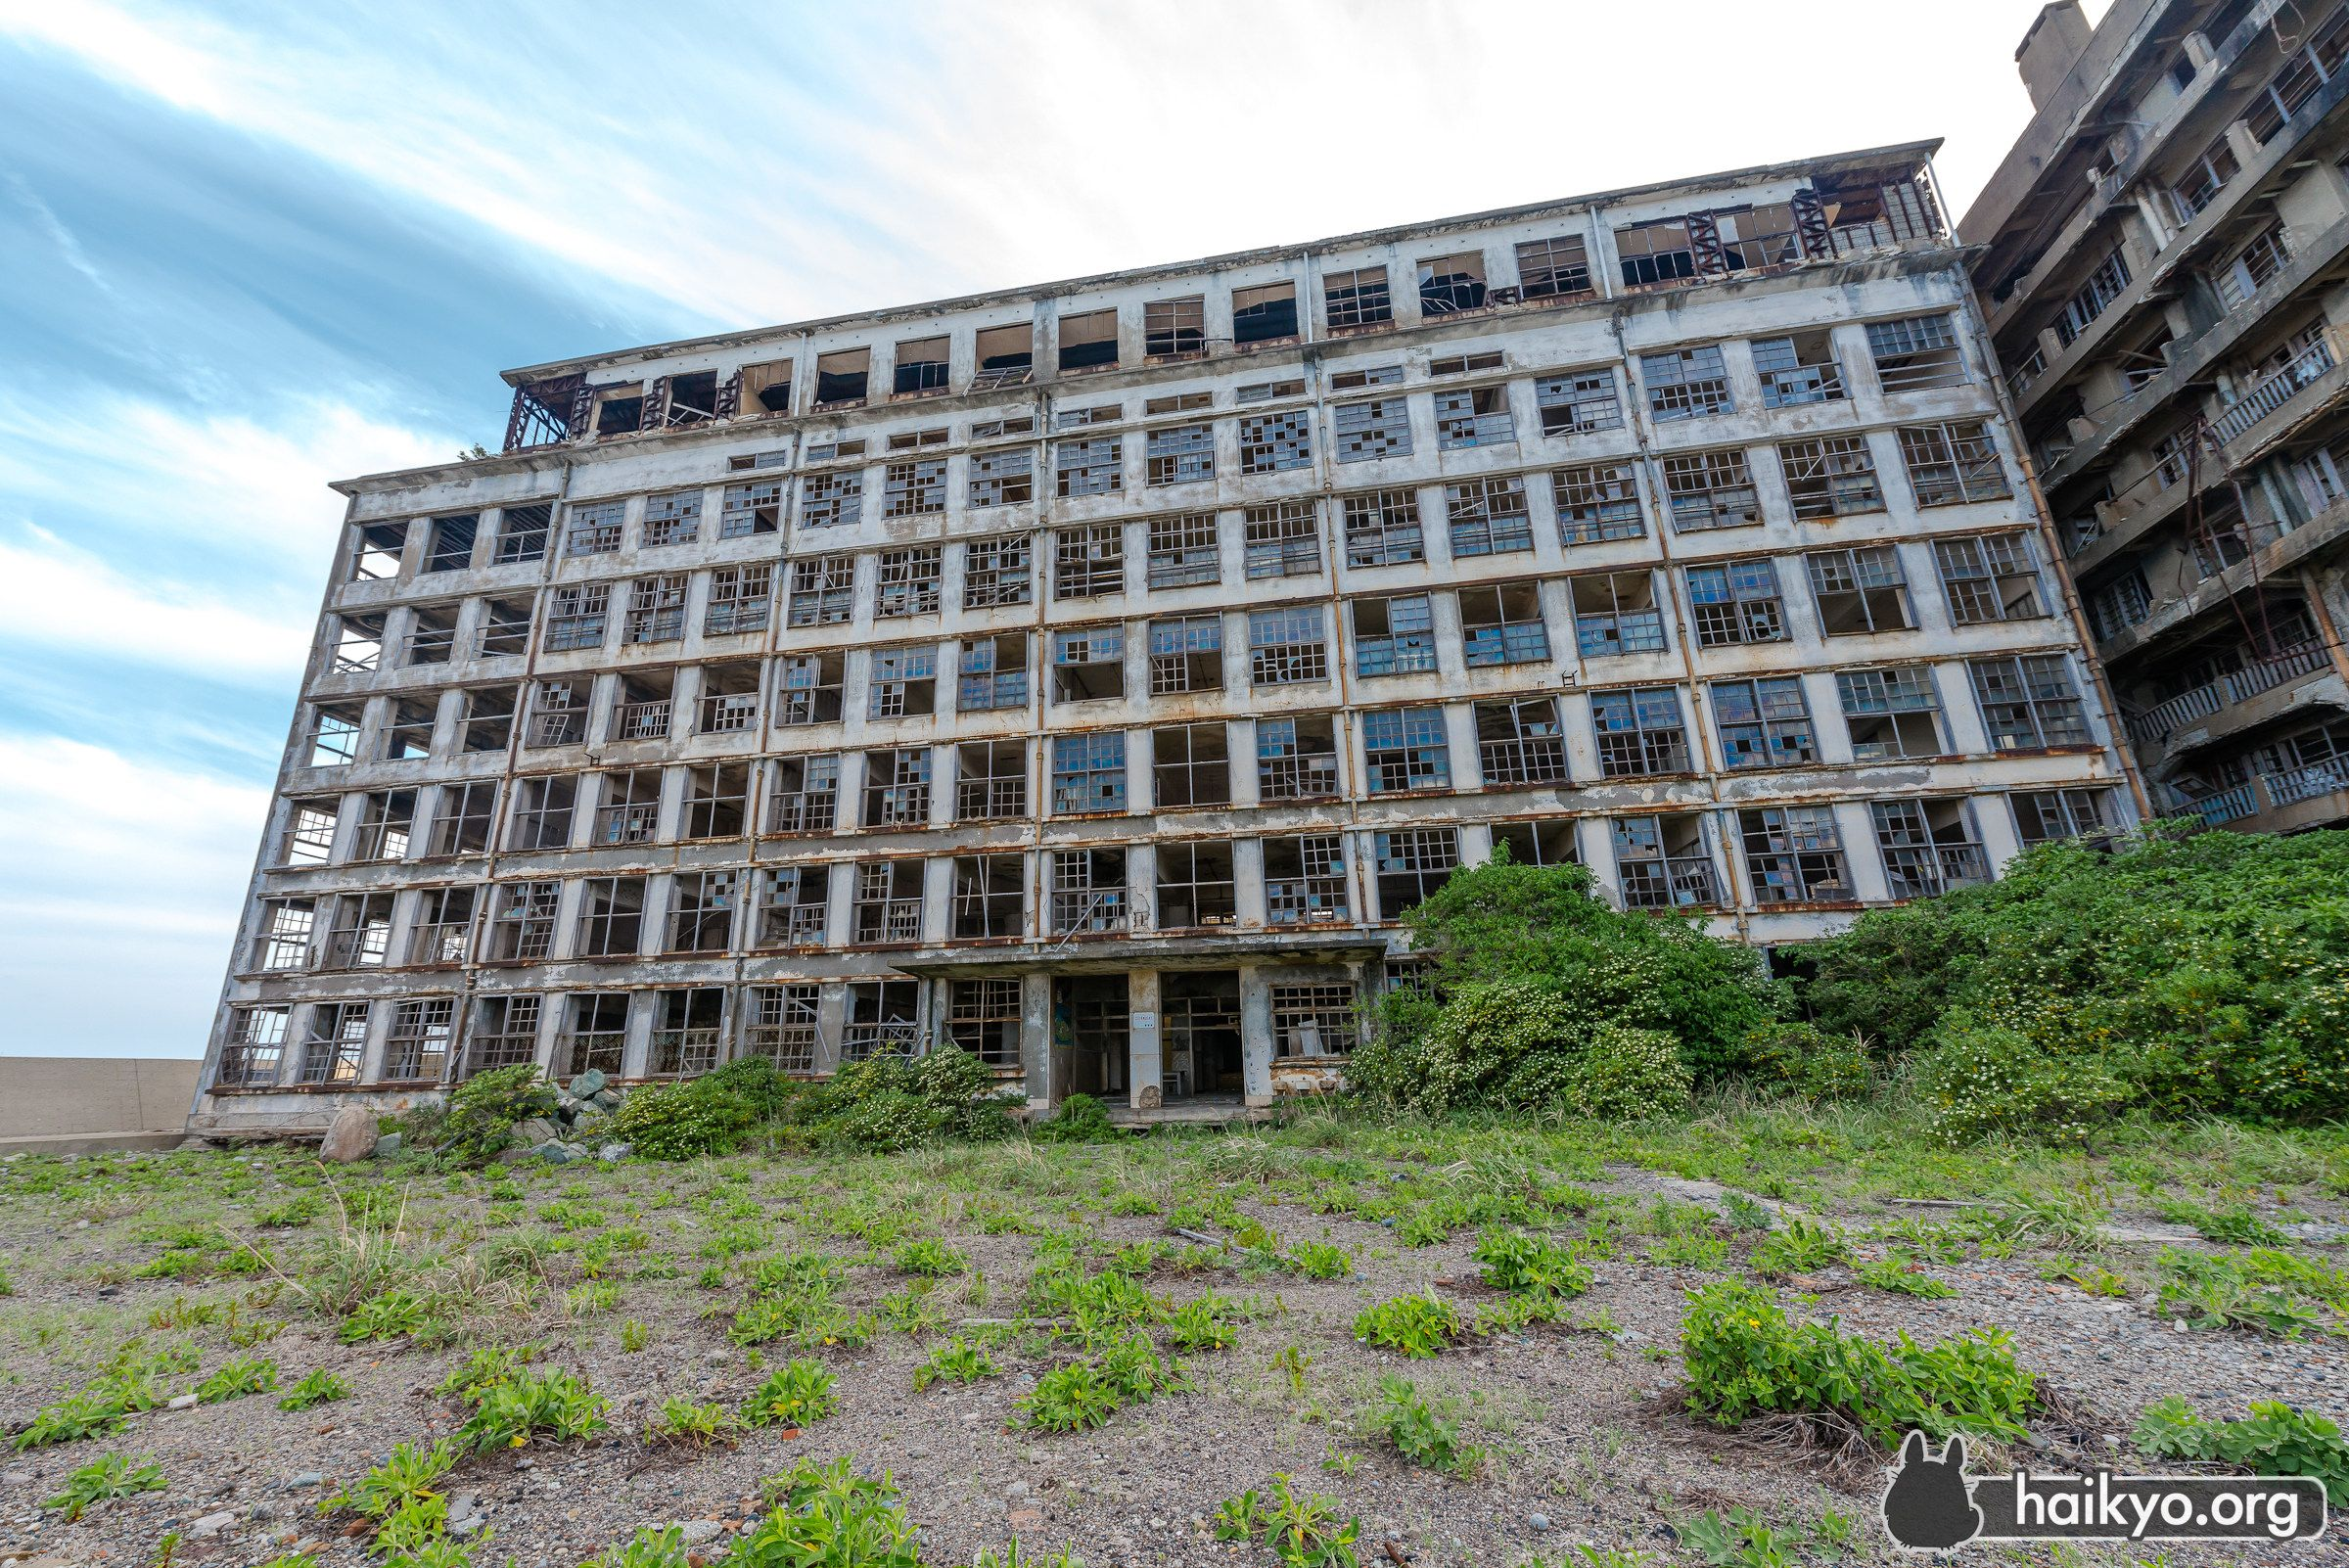 Gunkanjima school, .Japan's Hashima Island, commonly called Gunkanjima (or 'Battleship Island'), was populated from 1887 to 1974 as a coal mining facility and housed thousands of workers in its heyday. When coal mining declined, operations at the facility ceased and the island was abandoned.